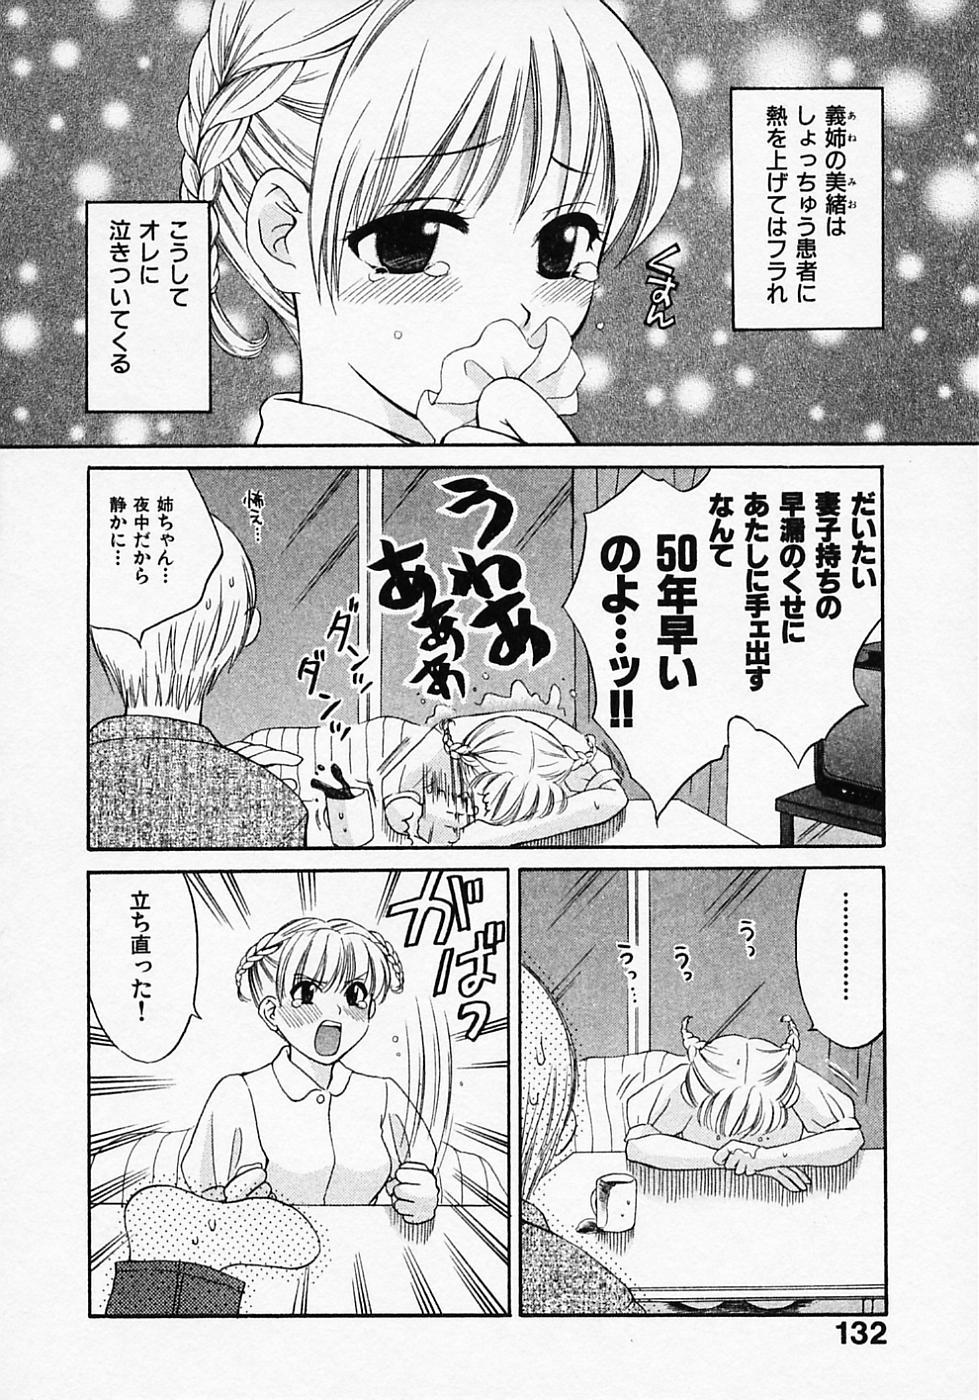 Maid In Japan 135